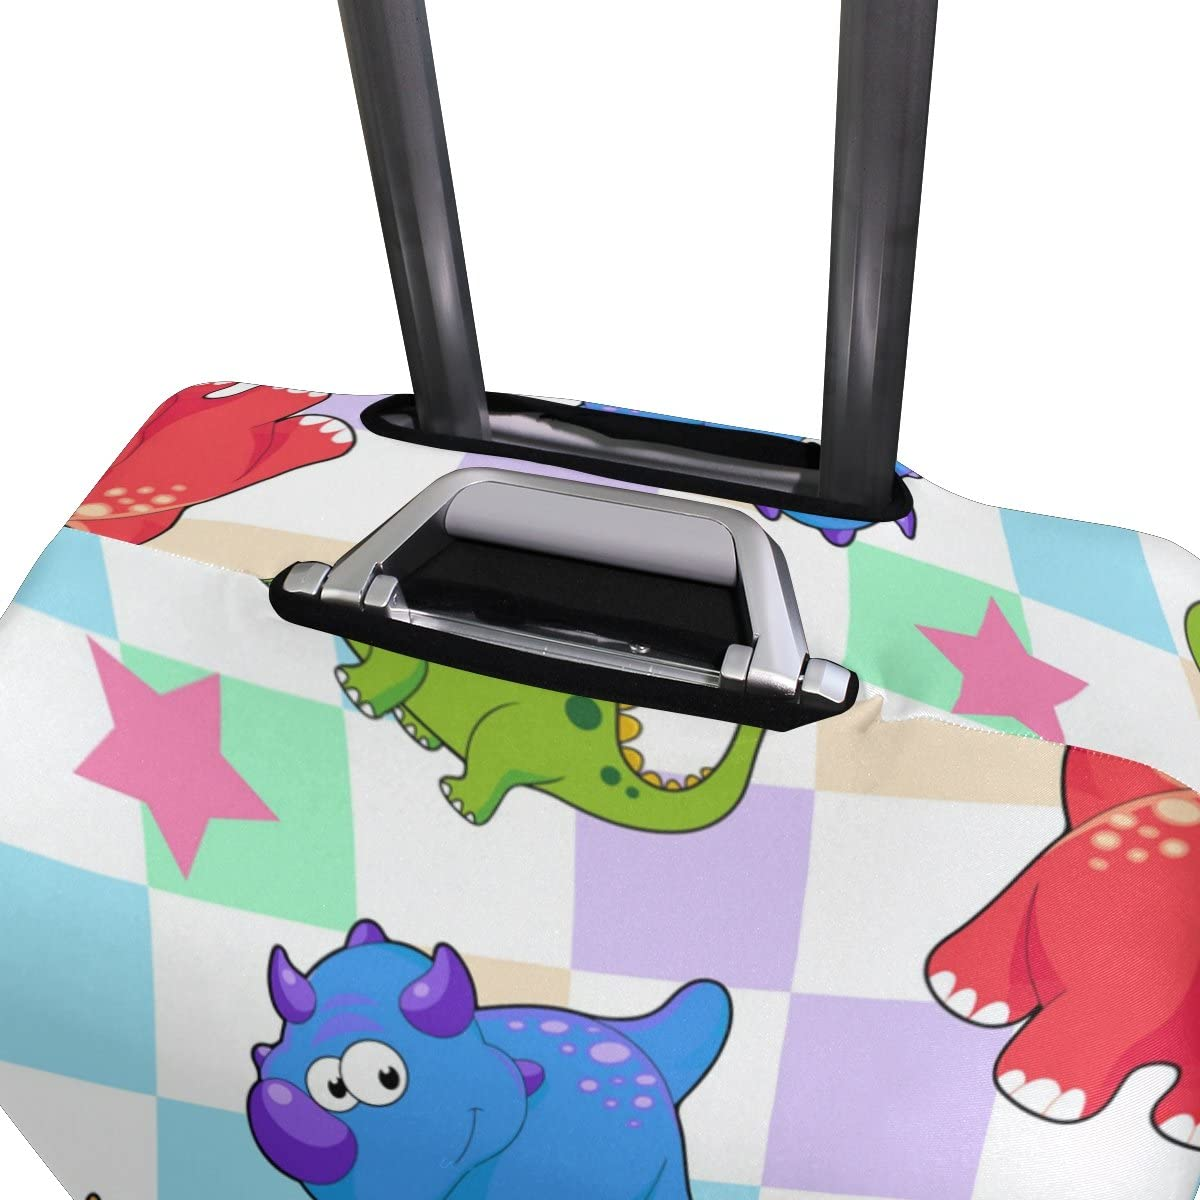 OREZI Luggage Protector Cartoon Dinosaur Pattern Travel Luggage Elastic Cover Suitcase Washable and Durable Anti-Scratch Stretchy Case Cover Fits 18-32 Inches